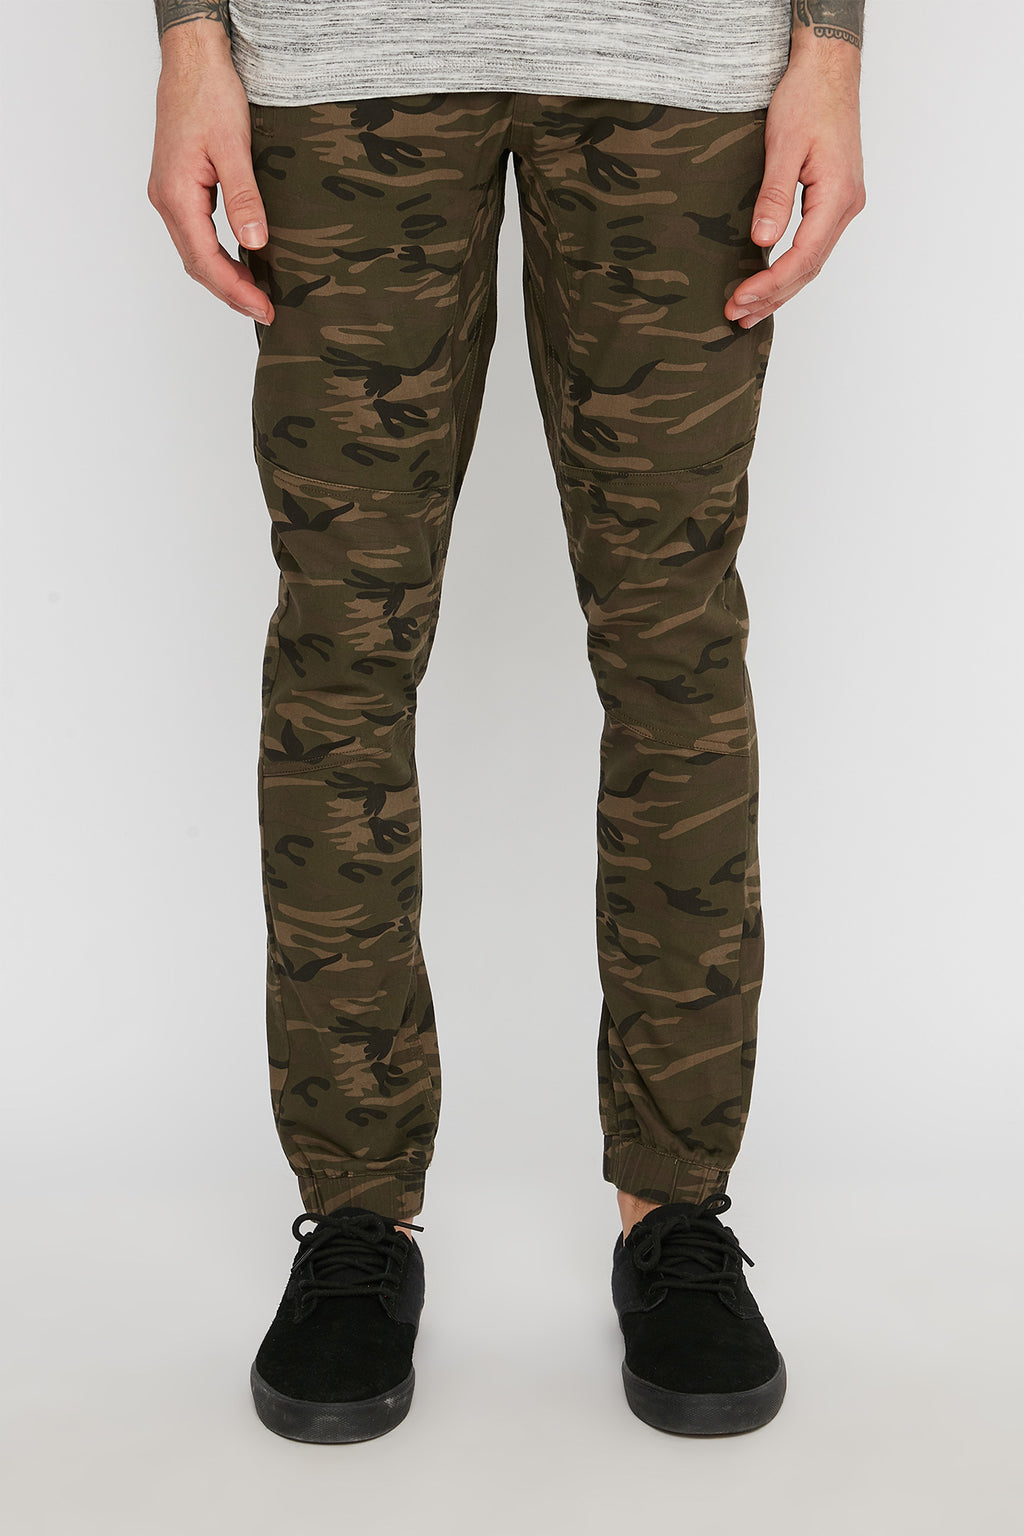 Zoo York Mens Twill Camo Jogger